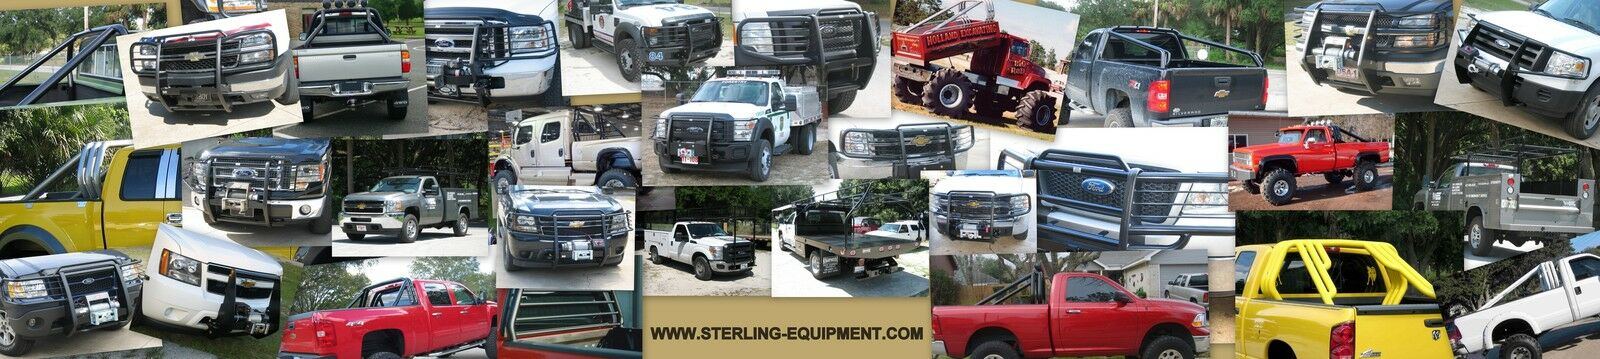 Sterling Equipment - Truck Products